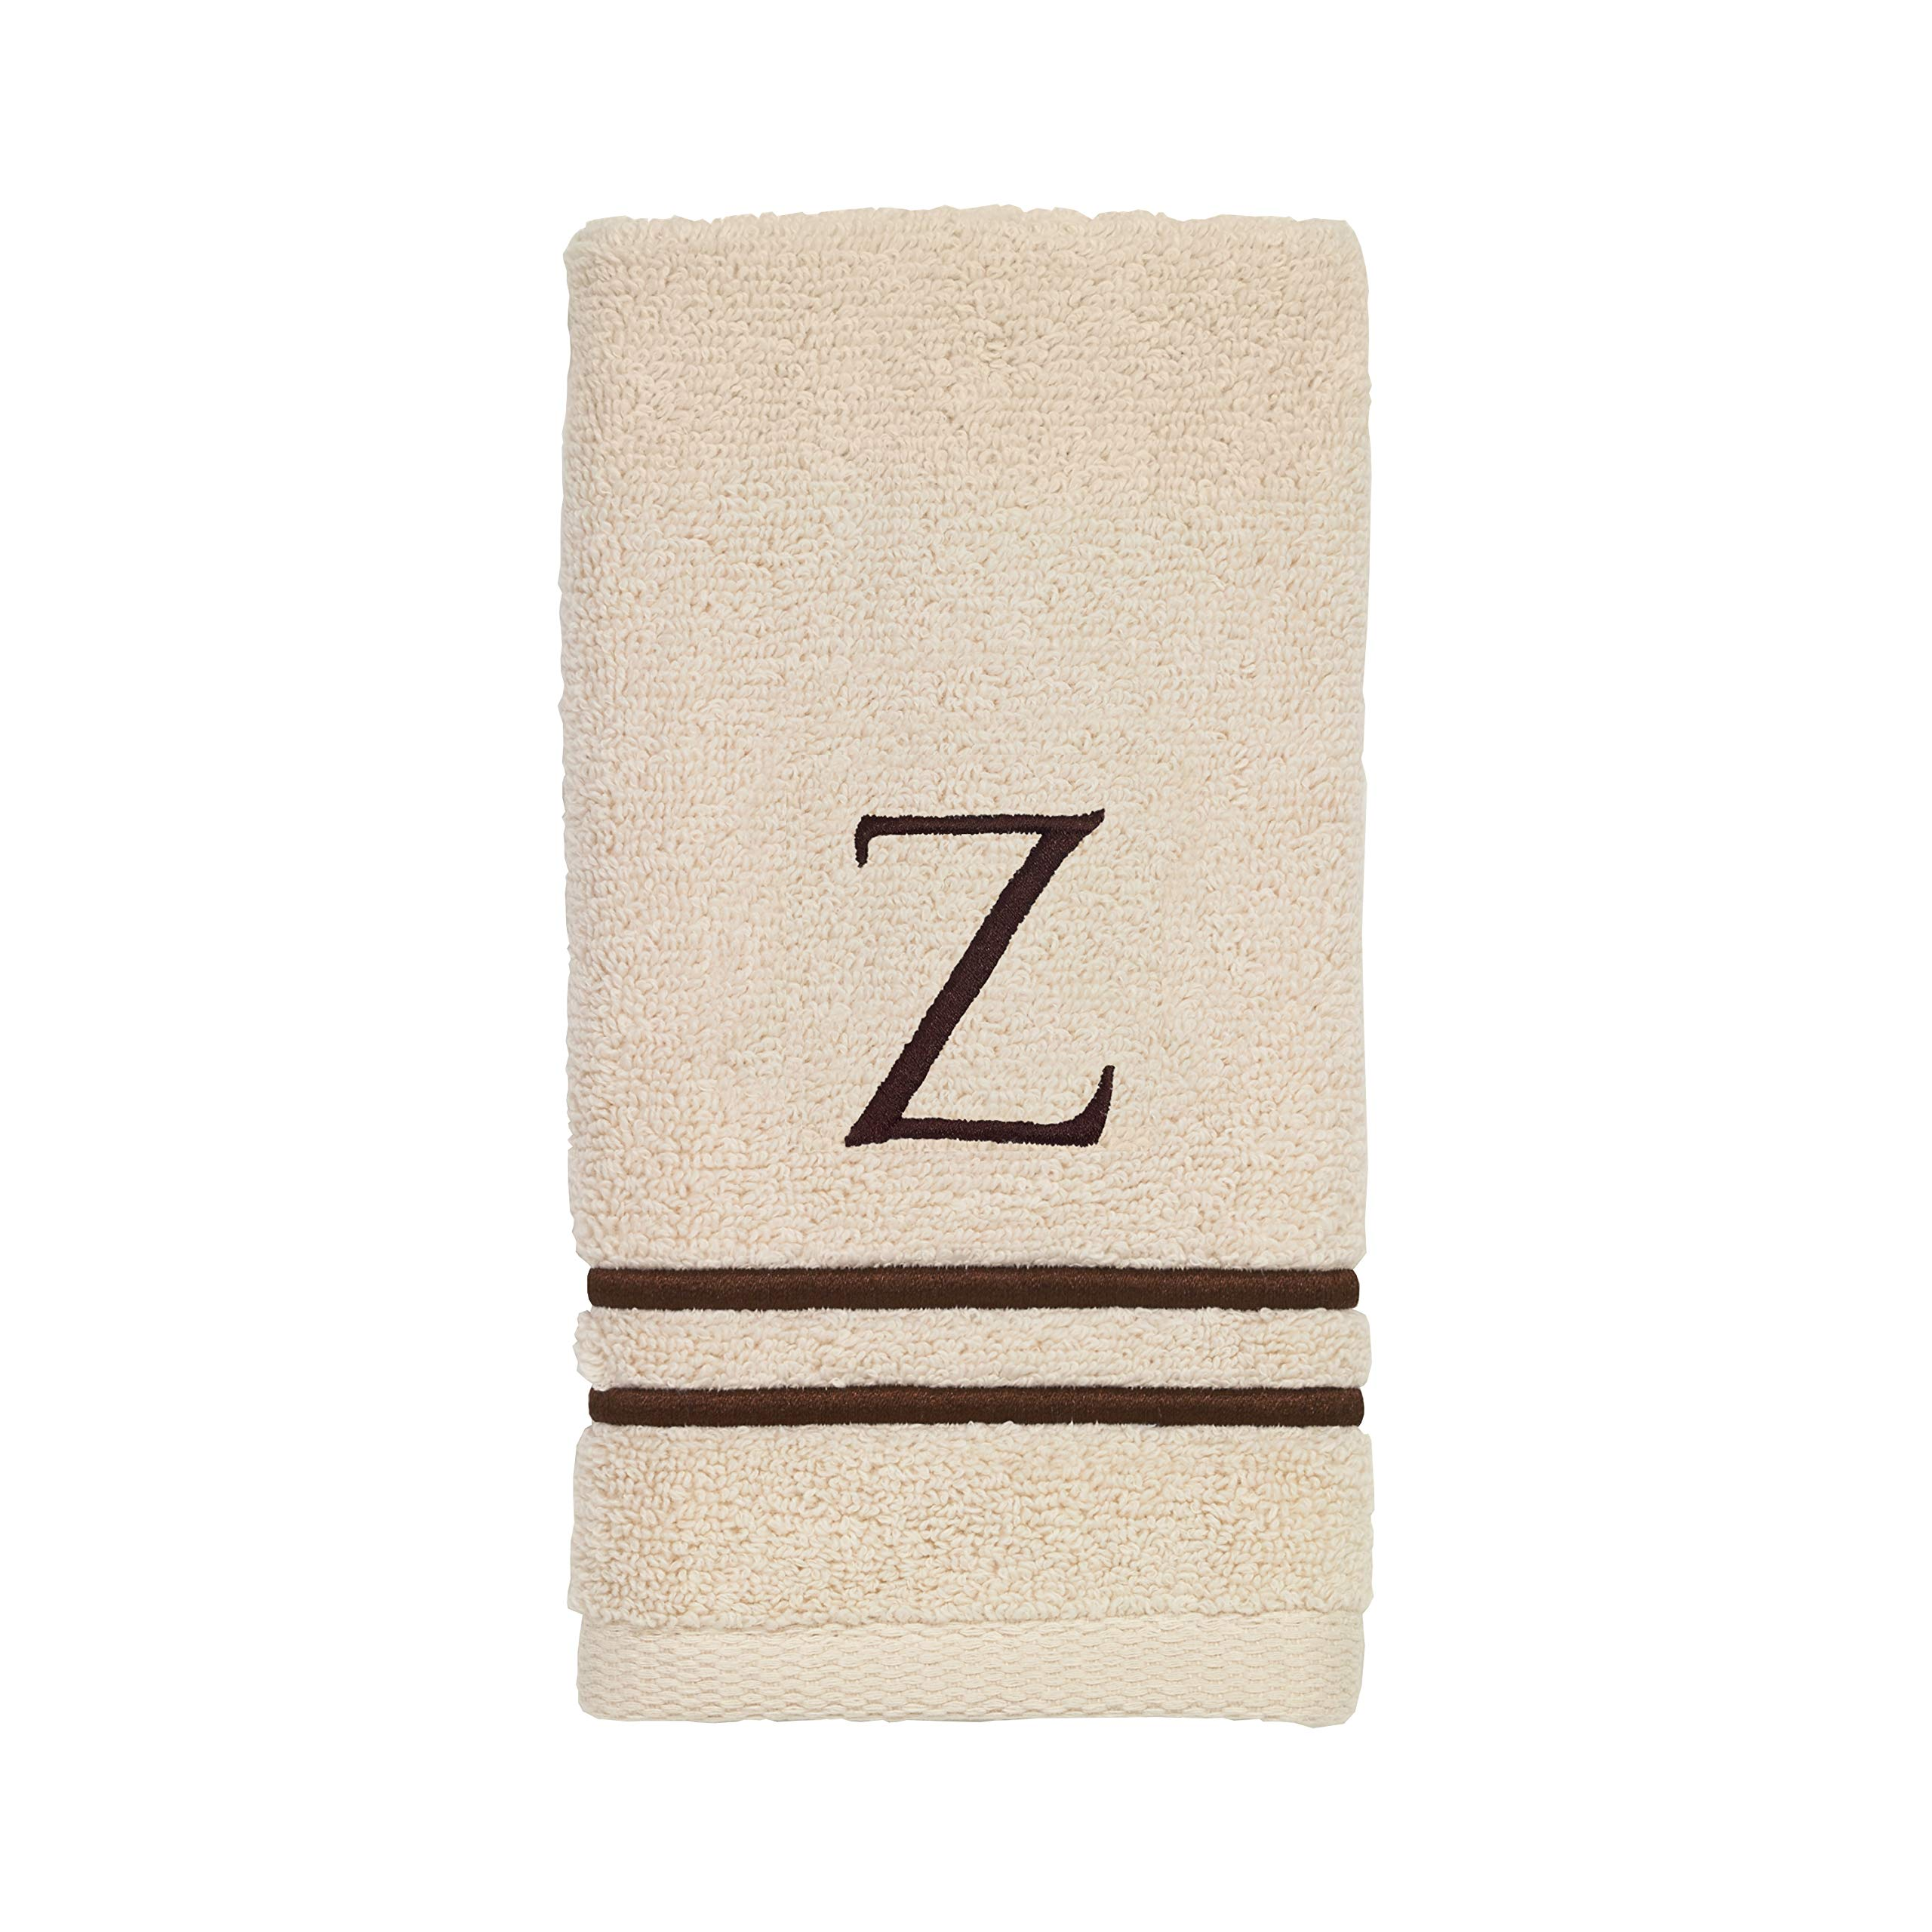 Avanti Linens 050876Z Block Monogram Bath/Hand and Fingertip Towel Kit, Medium, Ivory/Mocha